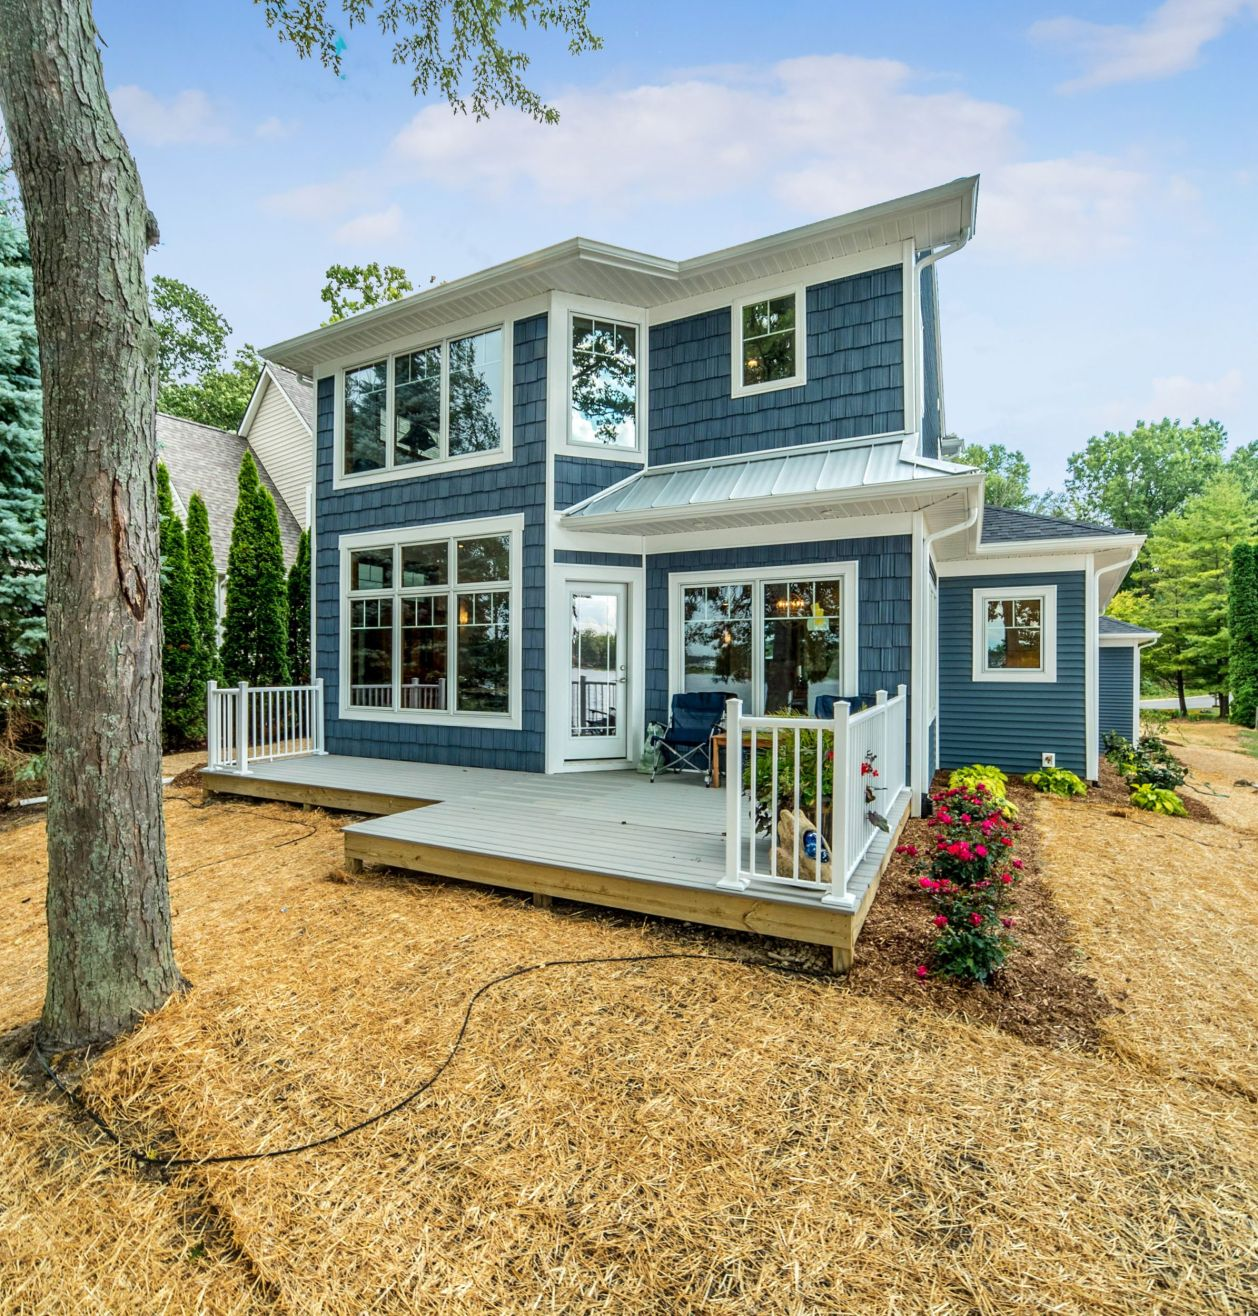 Blue shake two story home with small deck